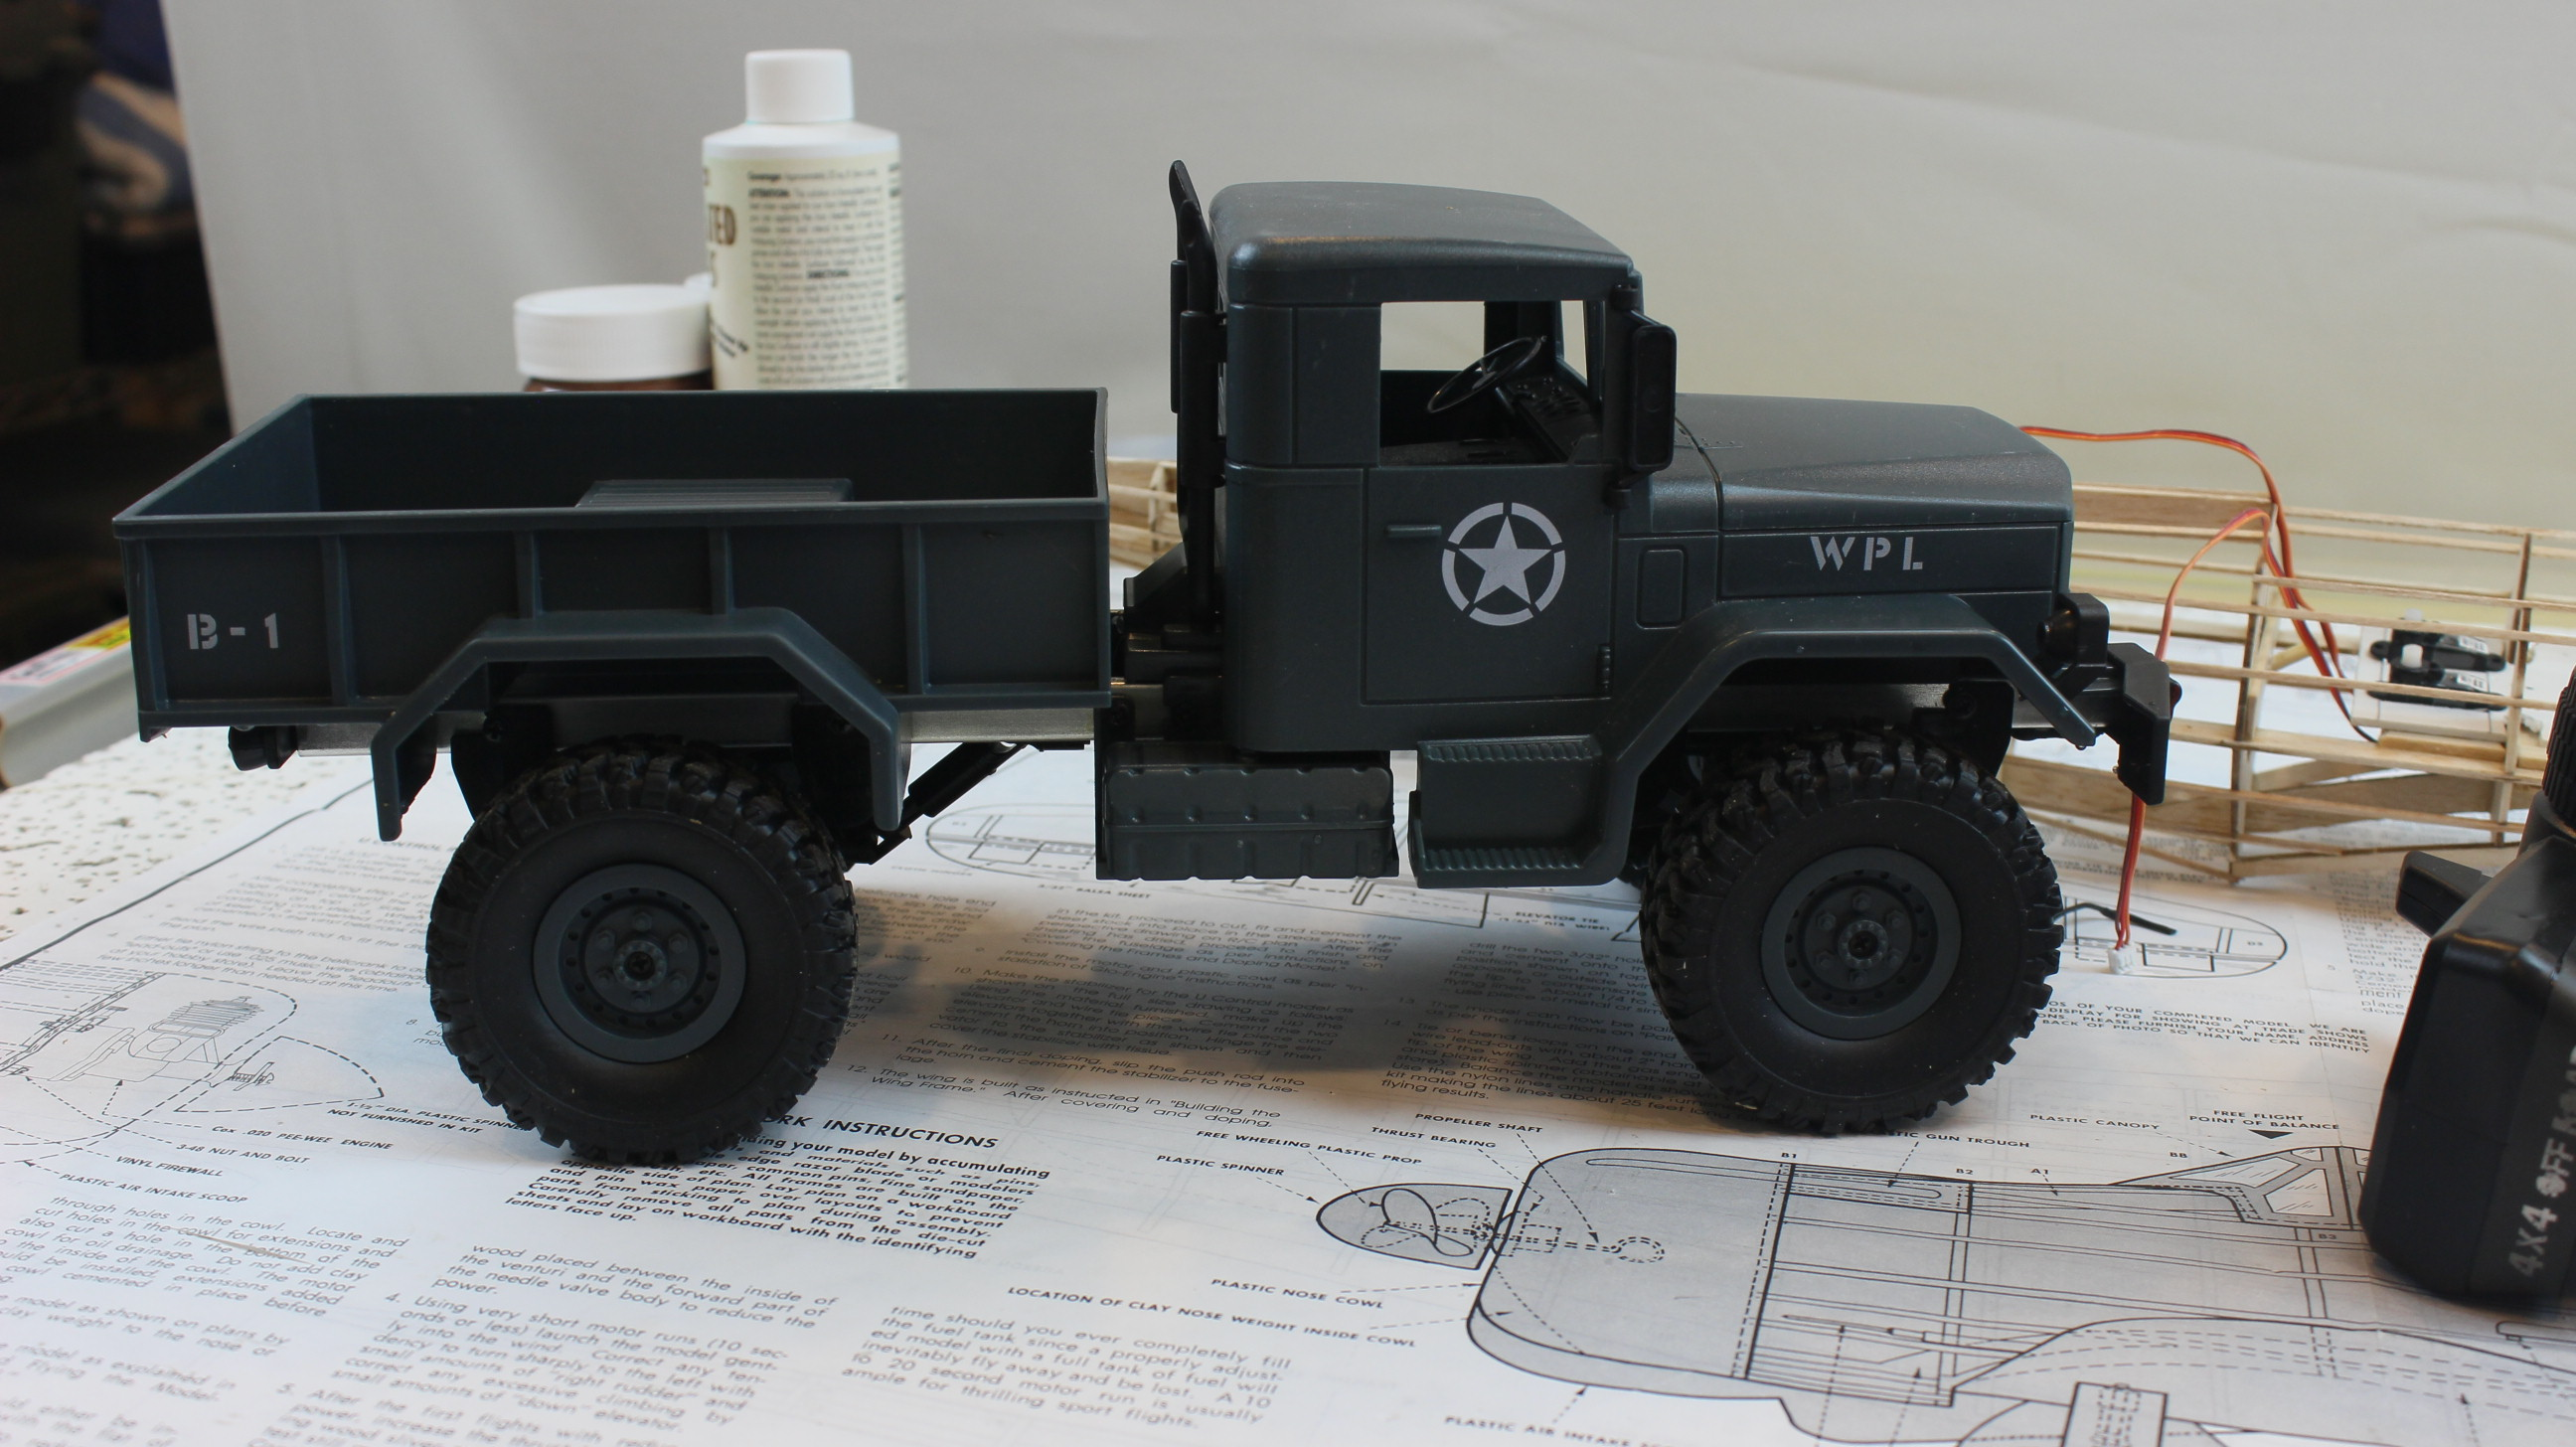 ordered a HENG LONG 3853A 1/16 2.4G 4WD Off-Road RC Military Truck Rock Crawler Army Car from Amazon